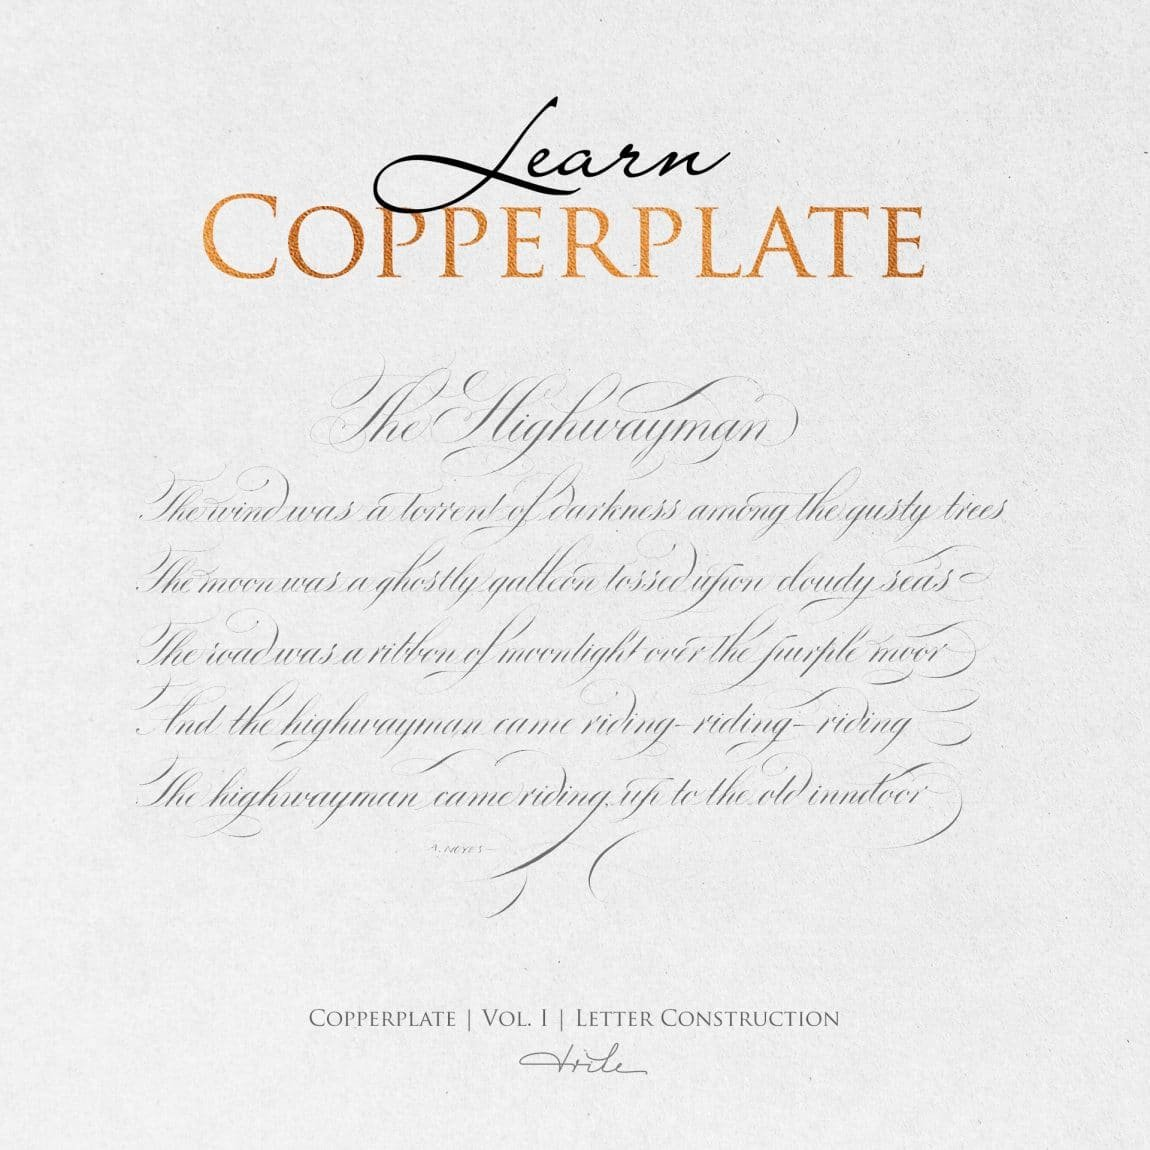 copperplate cover